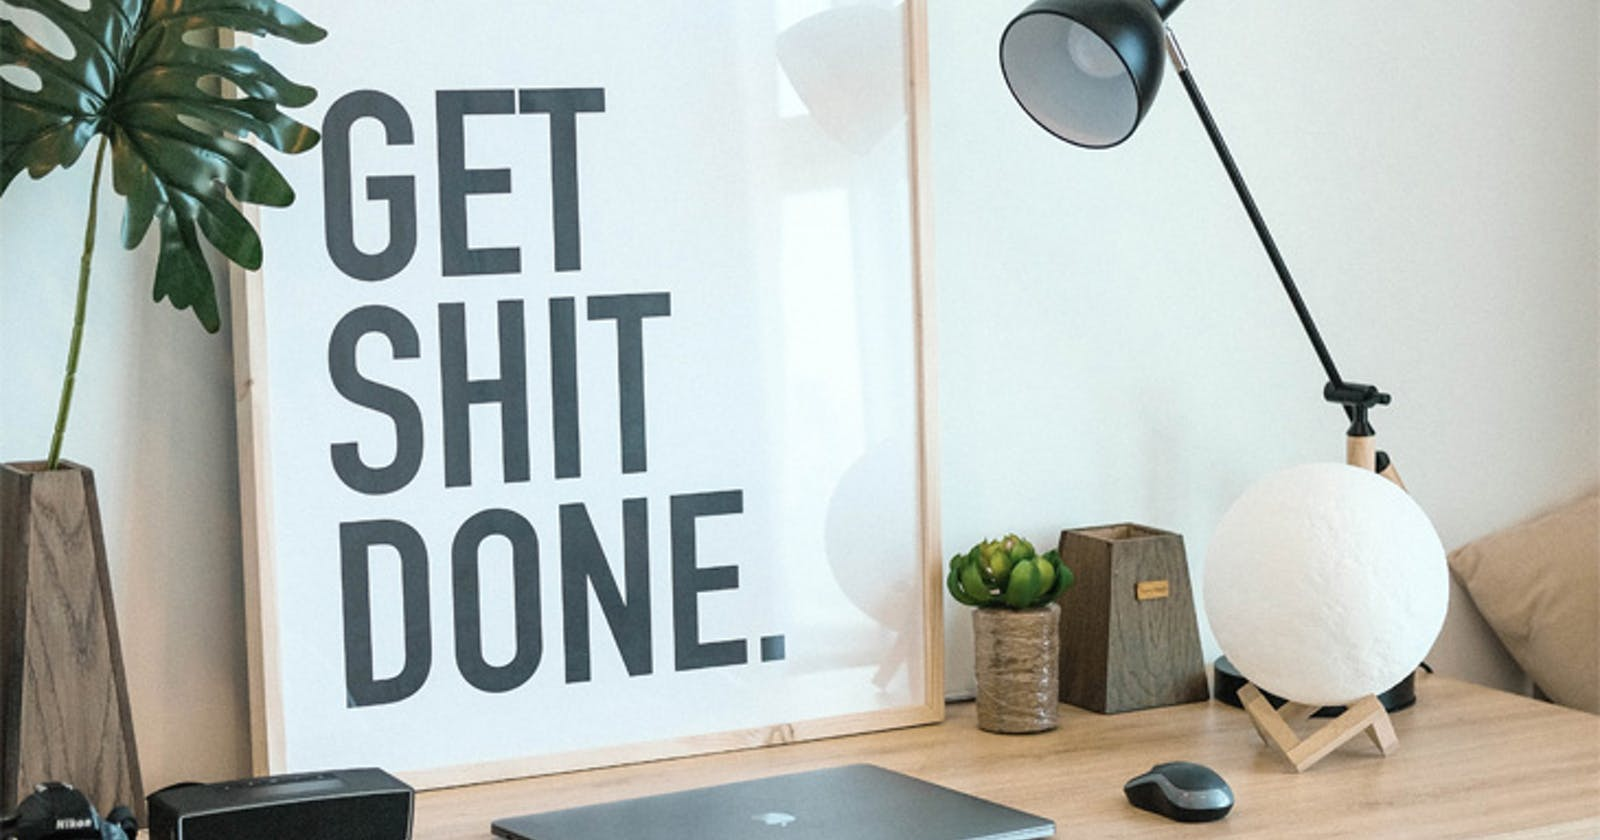 As a developer, your productivity is not all about writing codes